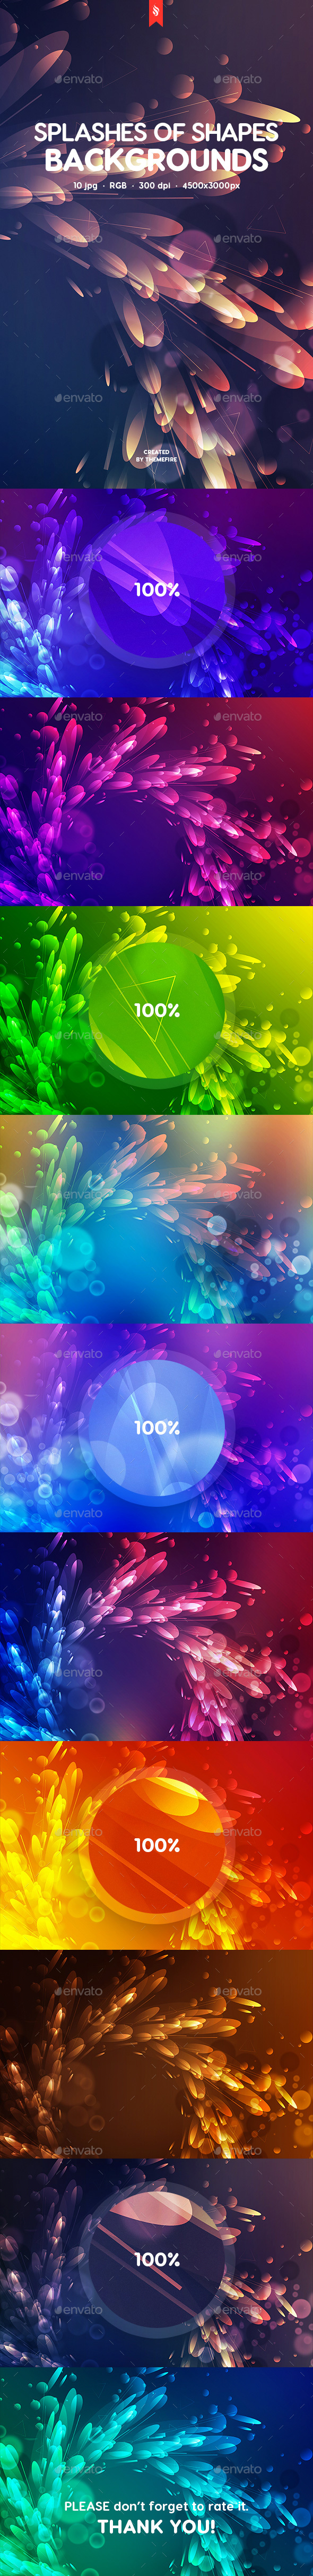 Abstract Splashes of Shapes Backgrounds - Abstract Backgrounds